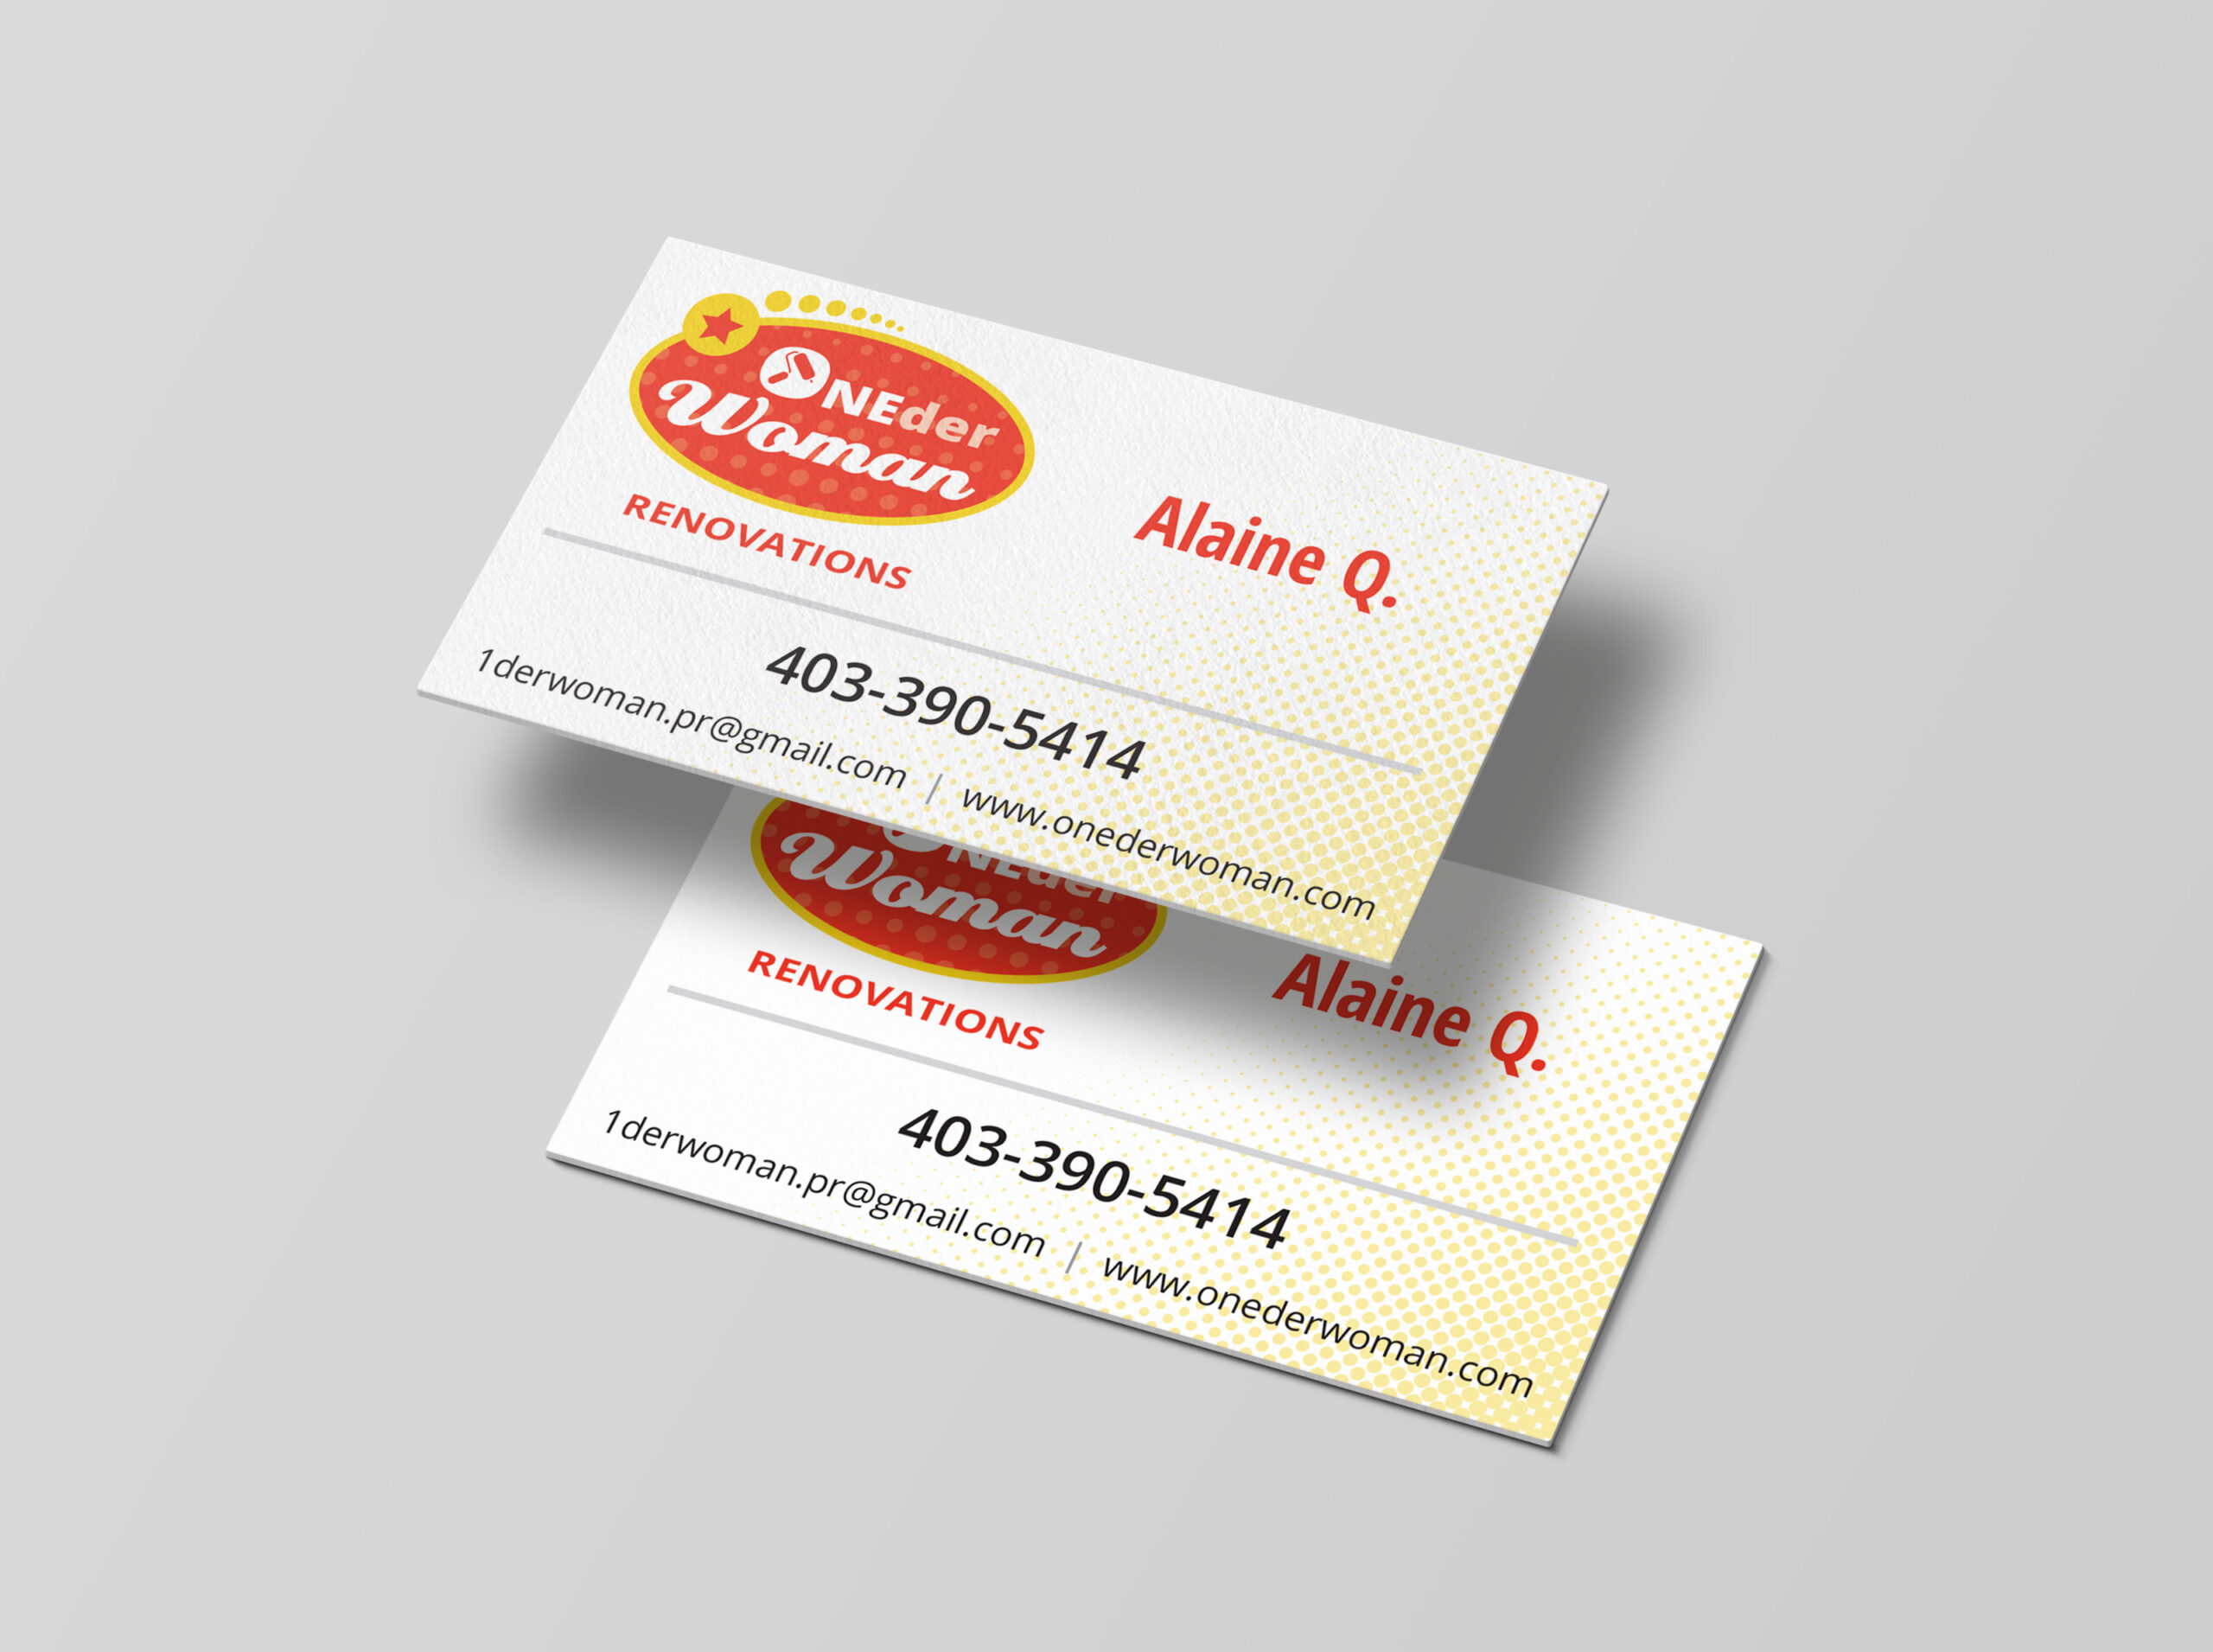 ONEderWoman Business Cards Portfolio Graphic Design Guelph Floating cards